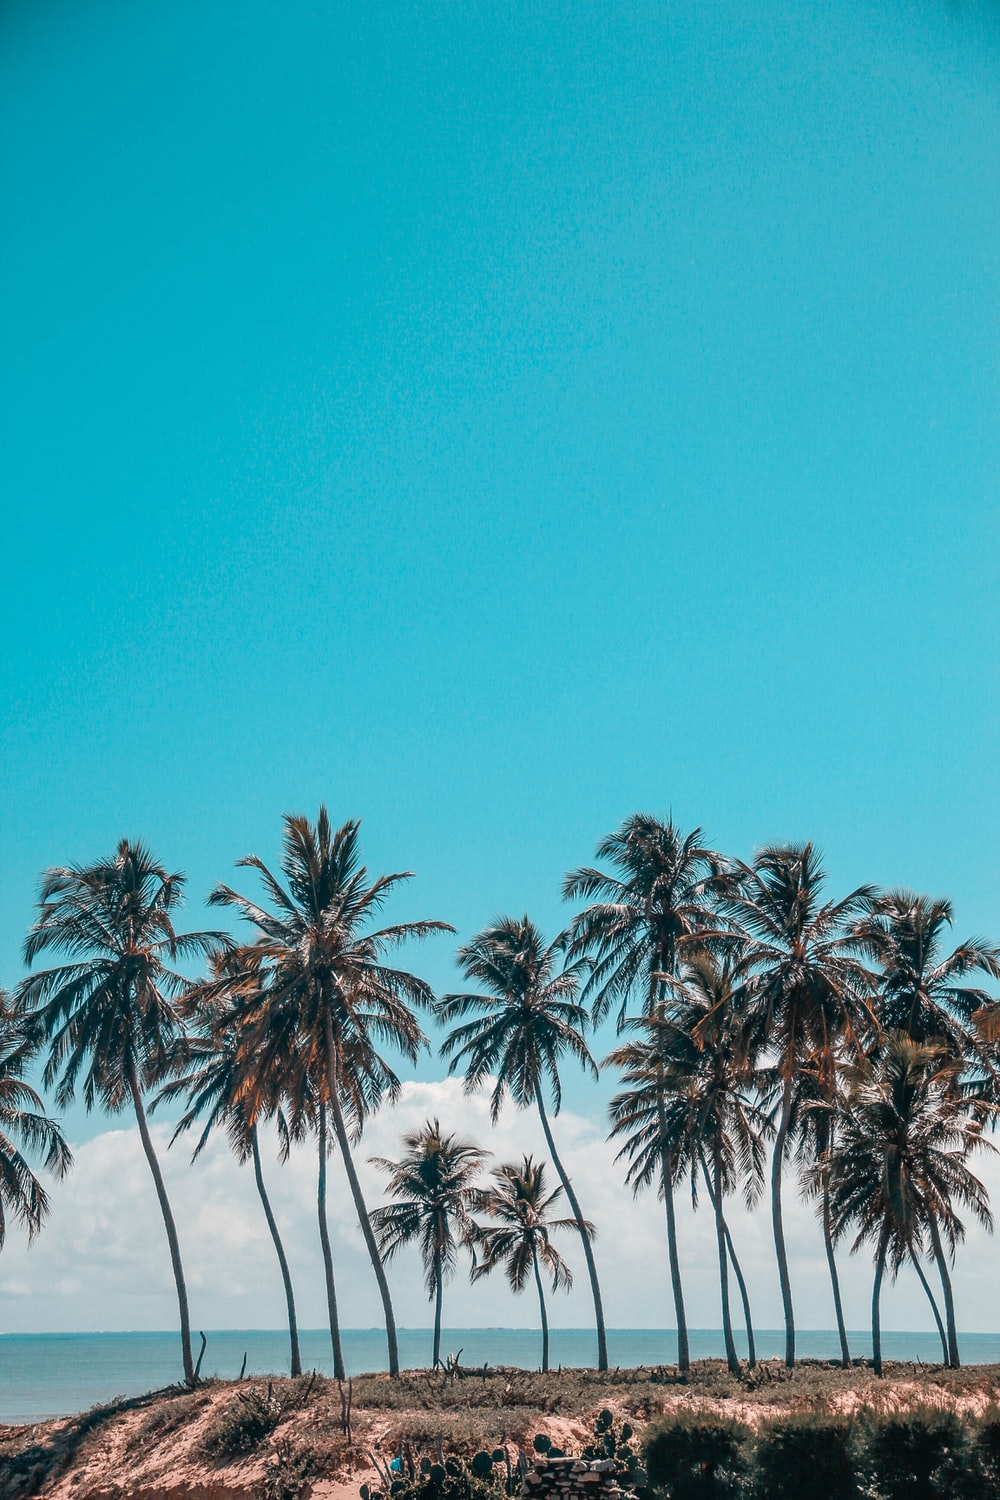 landscape photography of palm trees near the sea